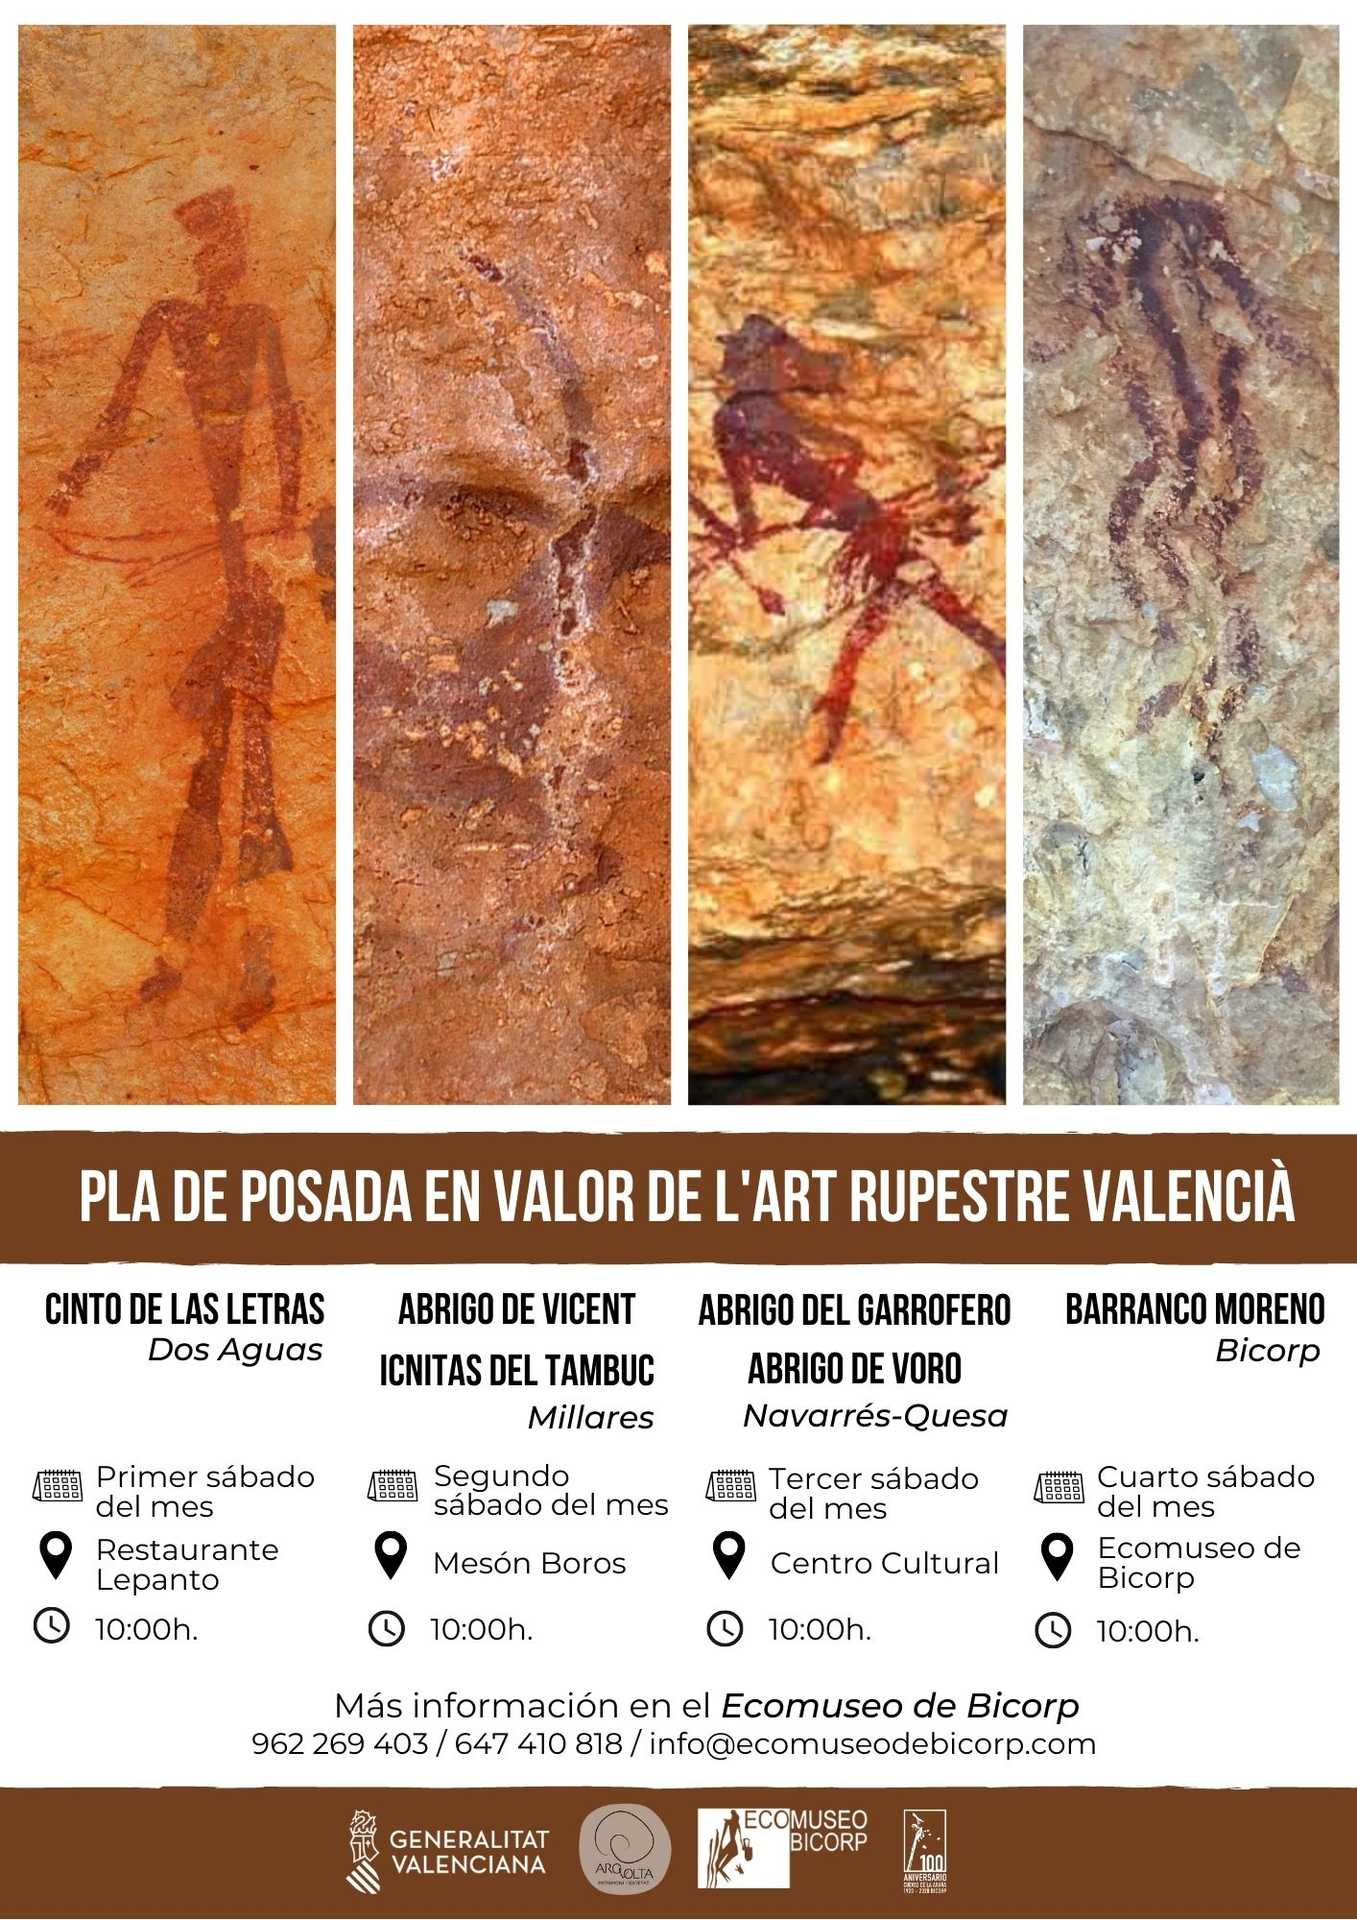 GUIDED TOURS OF CAVE ART IN MACIZO DEL CAROIG